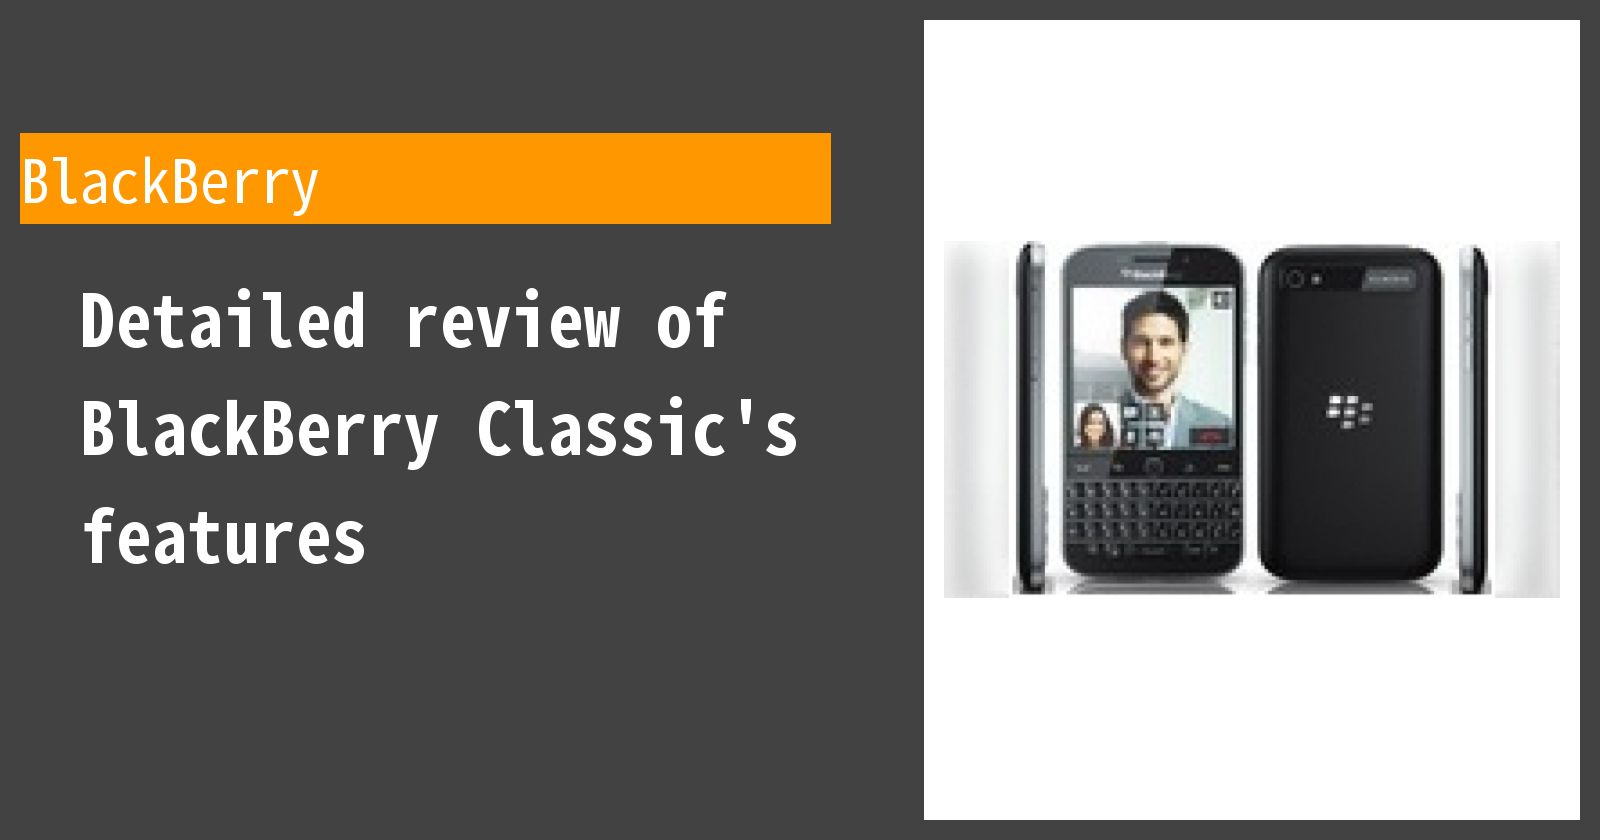 Detailed review of BlackBerry Classic's features